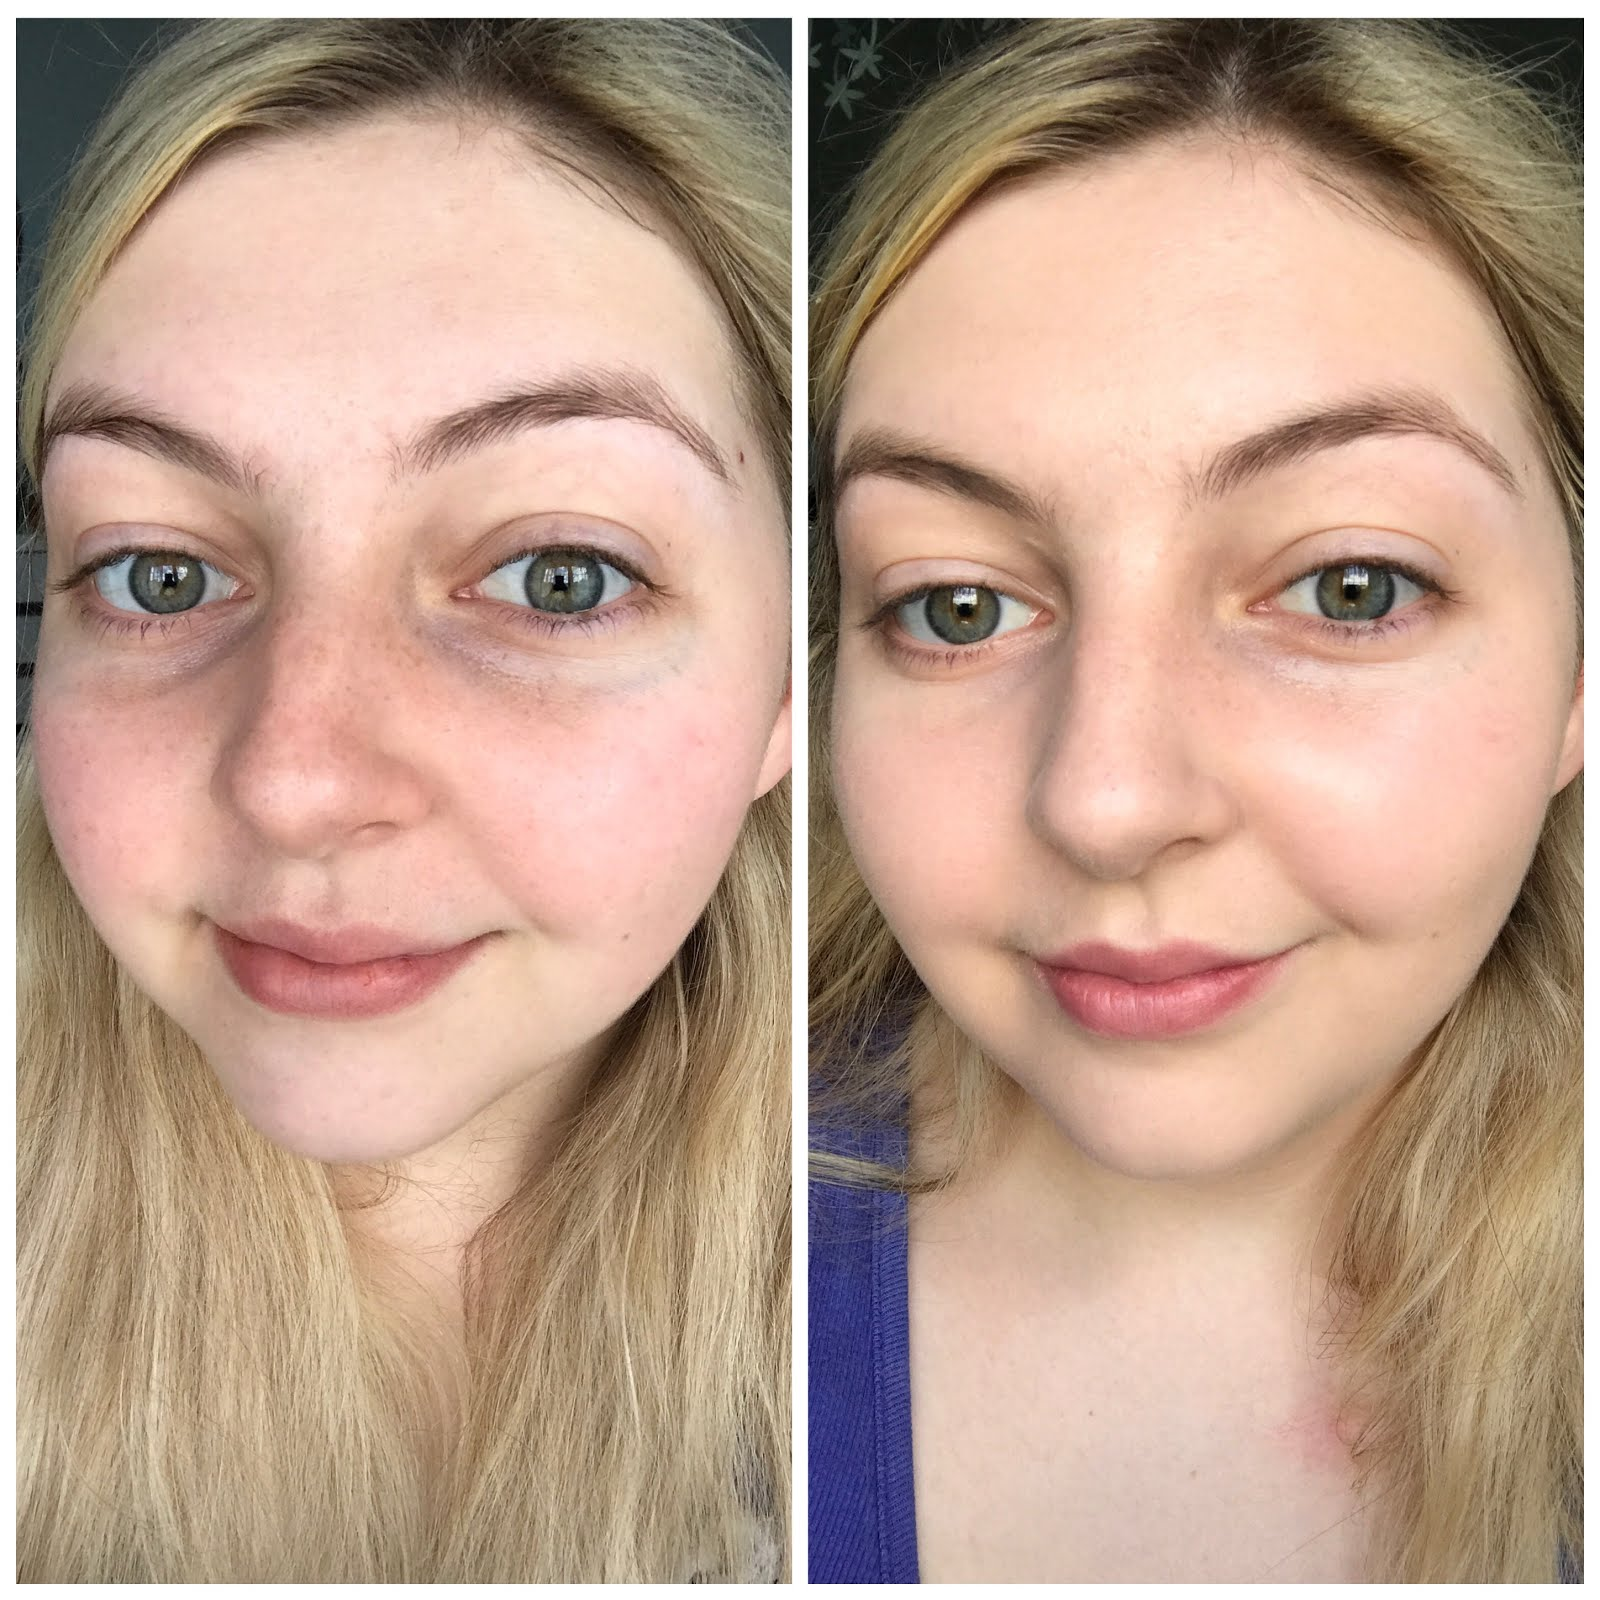 The ordinary skincare before and after